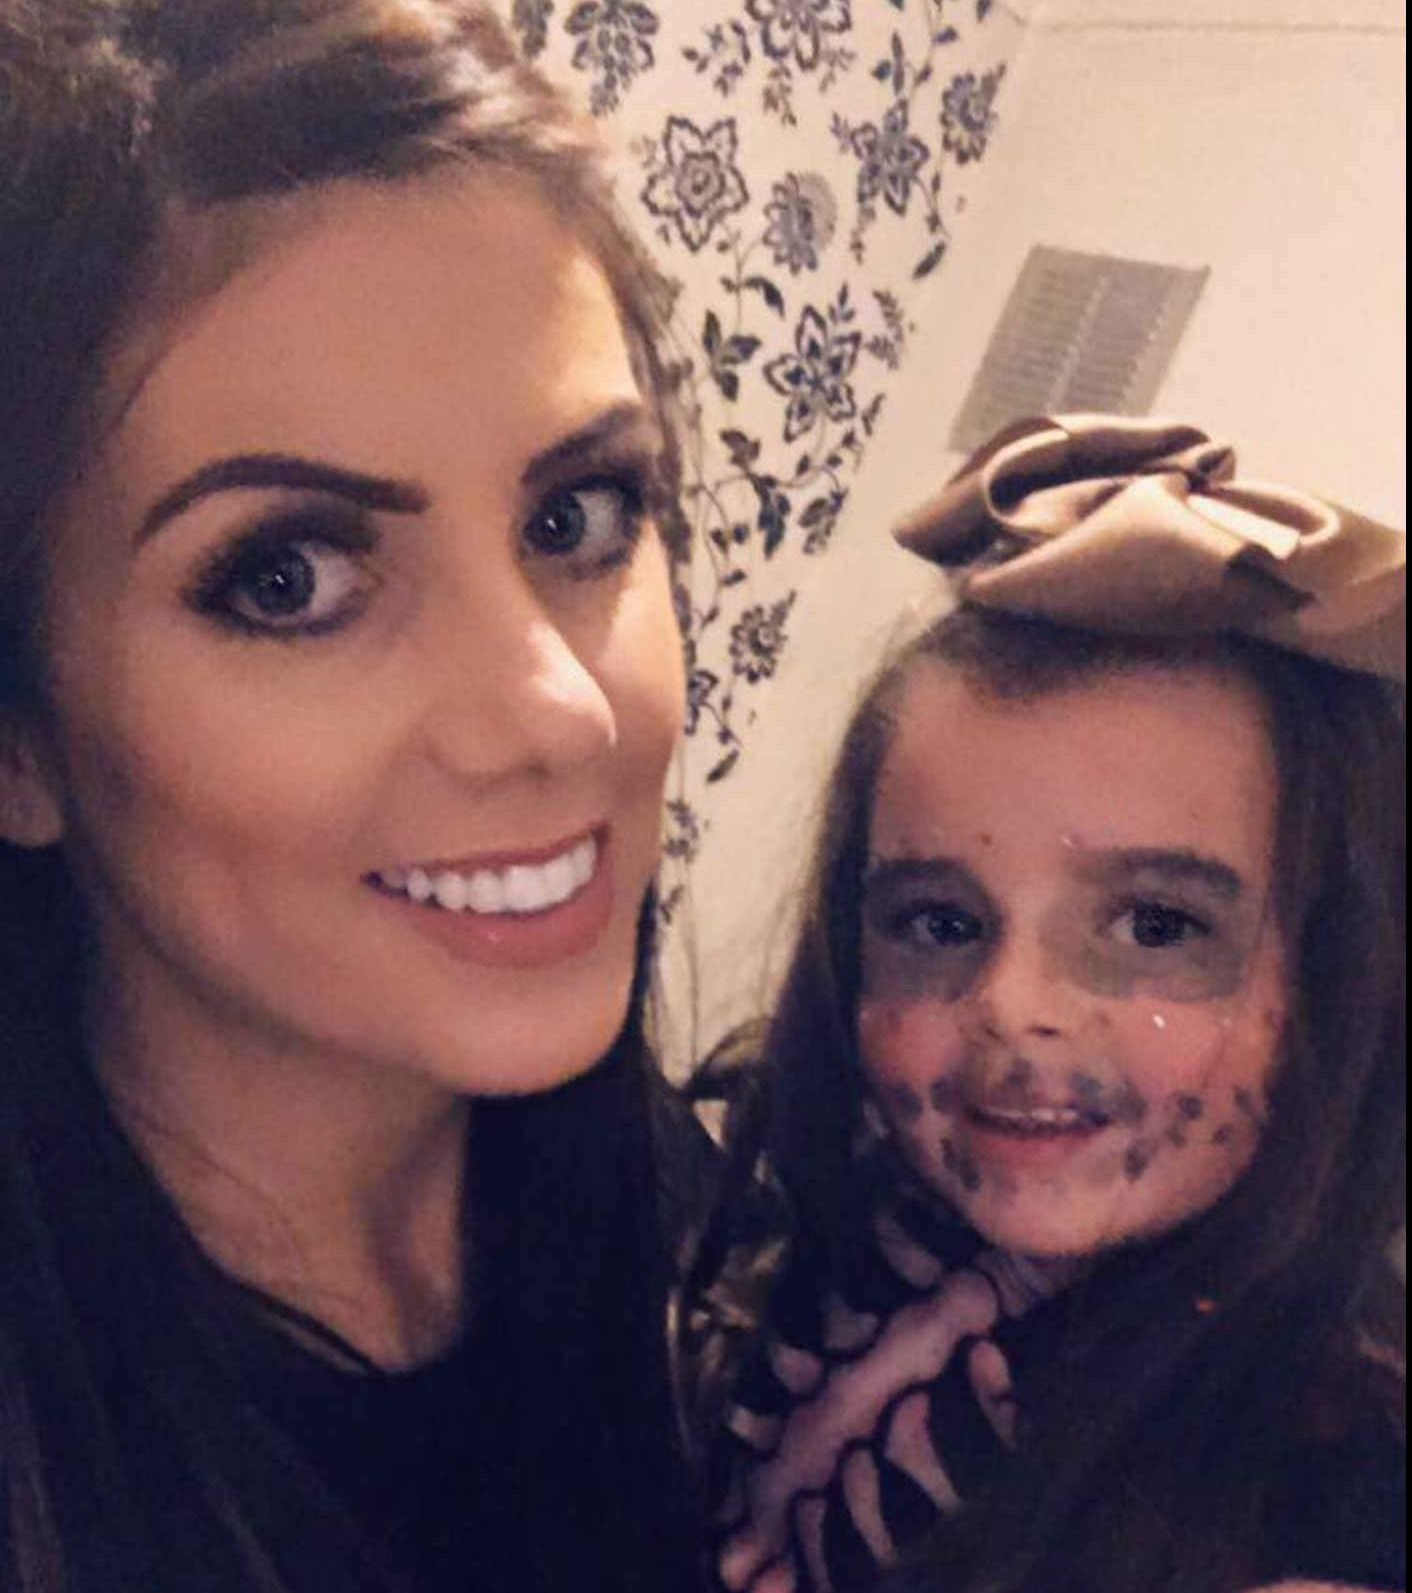 """A HEART-RENDING video in which a sobbing four-year-old Irish girl is told she must spend her third Christmas homeless has gone viral. Mum Leanne Dunleavy, took the video of daughter Poppy to highlight the devastating effects of homelessness on both children and adults. The video was posted on Facebook where it has racked up more than 167,000 views with many people blaming the Irish Government for Leanne?s situation. Leanne says she has been in and out of homeless shelters for the last two years due to unforeseen circumstances, and that she doesn?t expect her situation to change soon. She said the video """"has broken many hearts across the world, not just ireland""""."""